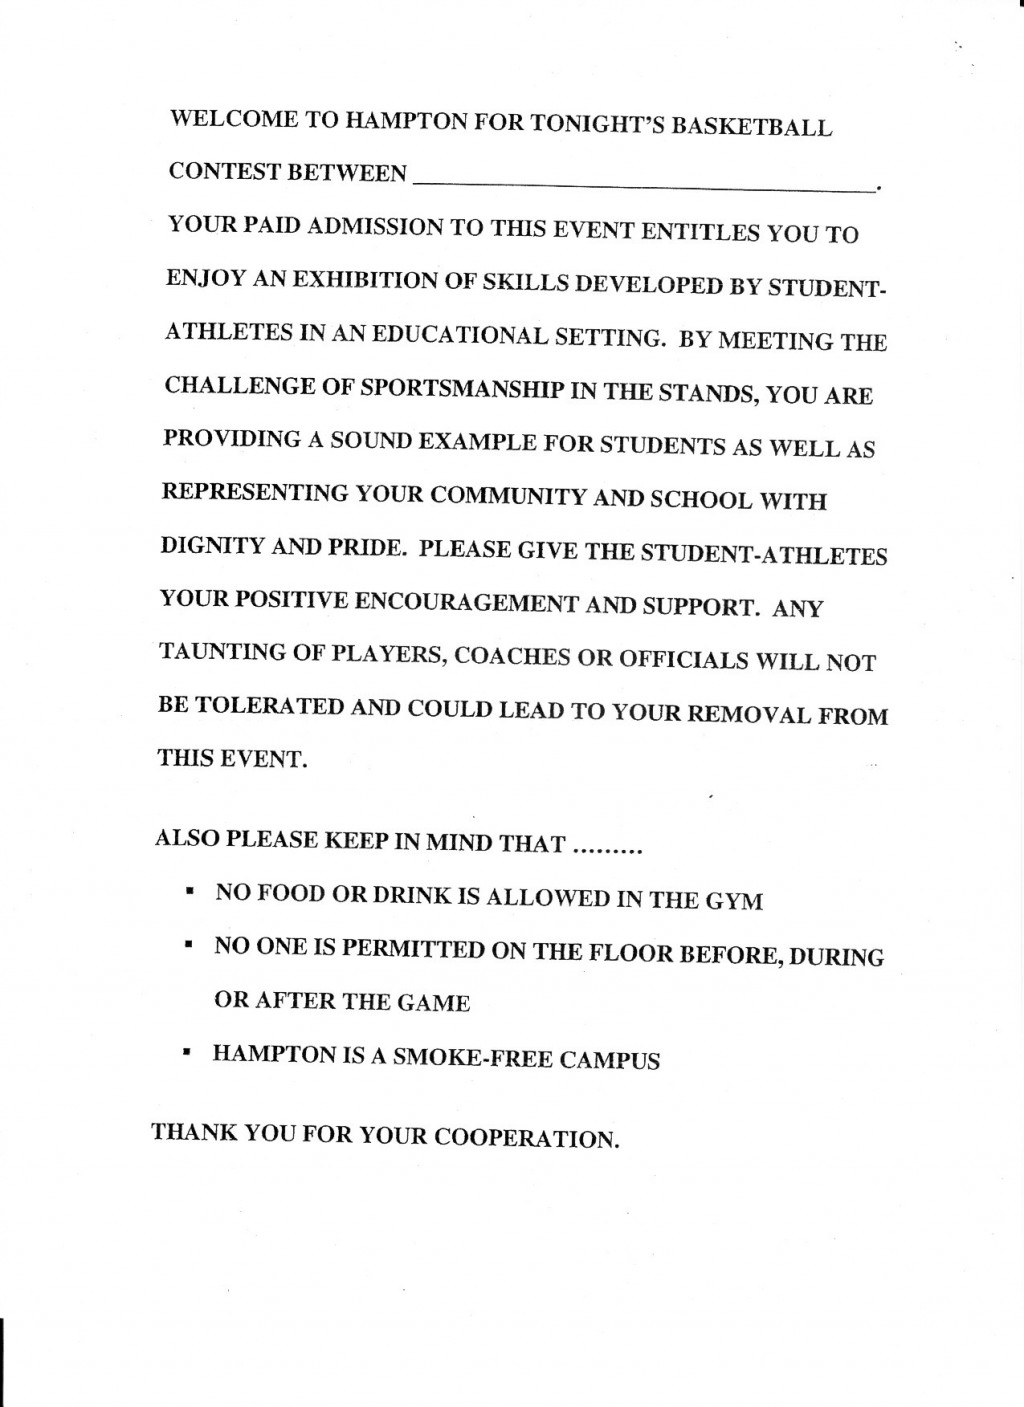 007 Sportsmanship Essay Outline Pregame On Good What Is For 7th Grade Shocking Ideas Pdf In Hindi Large